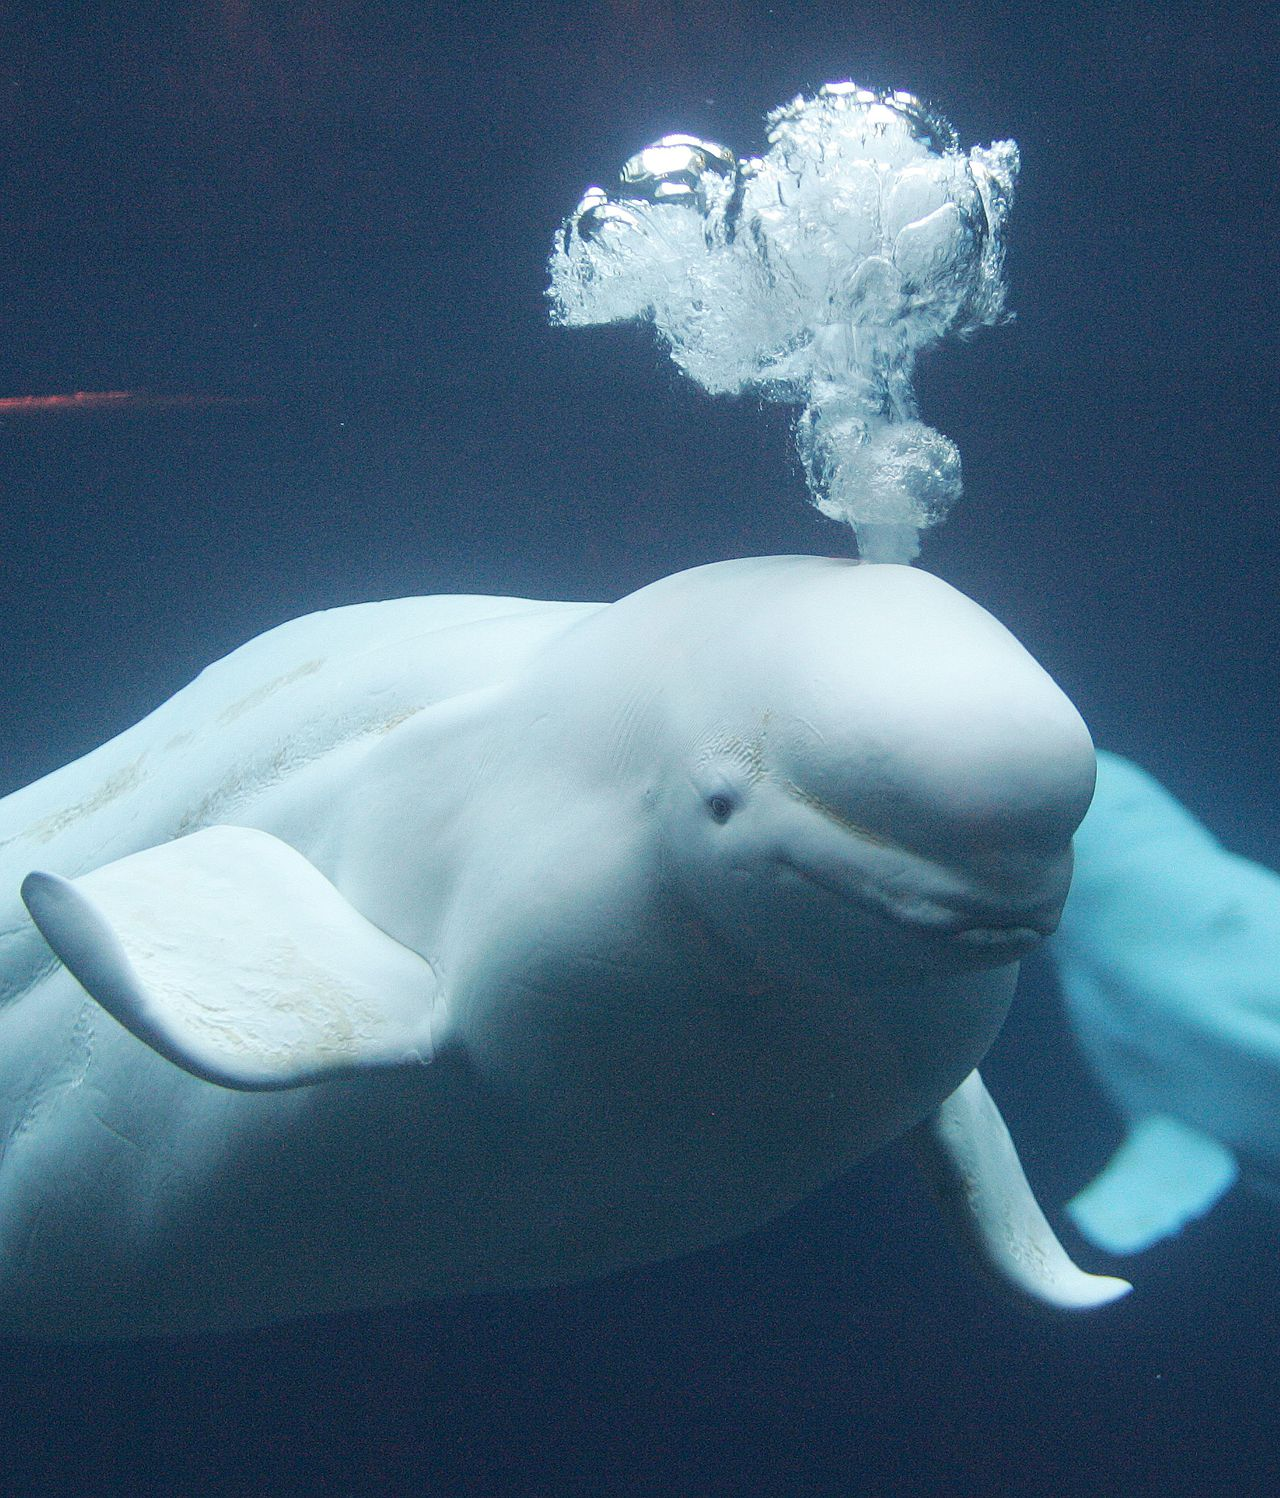 A beluga whale blows bubbles as it explores its new home at the Georgia Aquarium, Oct. 27, 2005, in Atlanta. When the 500,000-square-foot aquarium, bankrolled almost exclusively by a $200 million gift from Home Depot co-founder Bernie Marcus, opens Nov. 23, it will officially become the world's largest by virtually any standard. (AP Photo/John Bazemore)